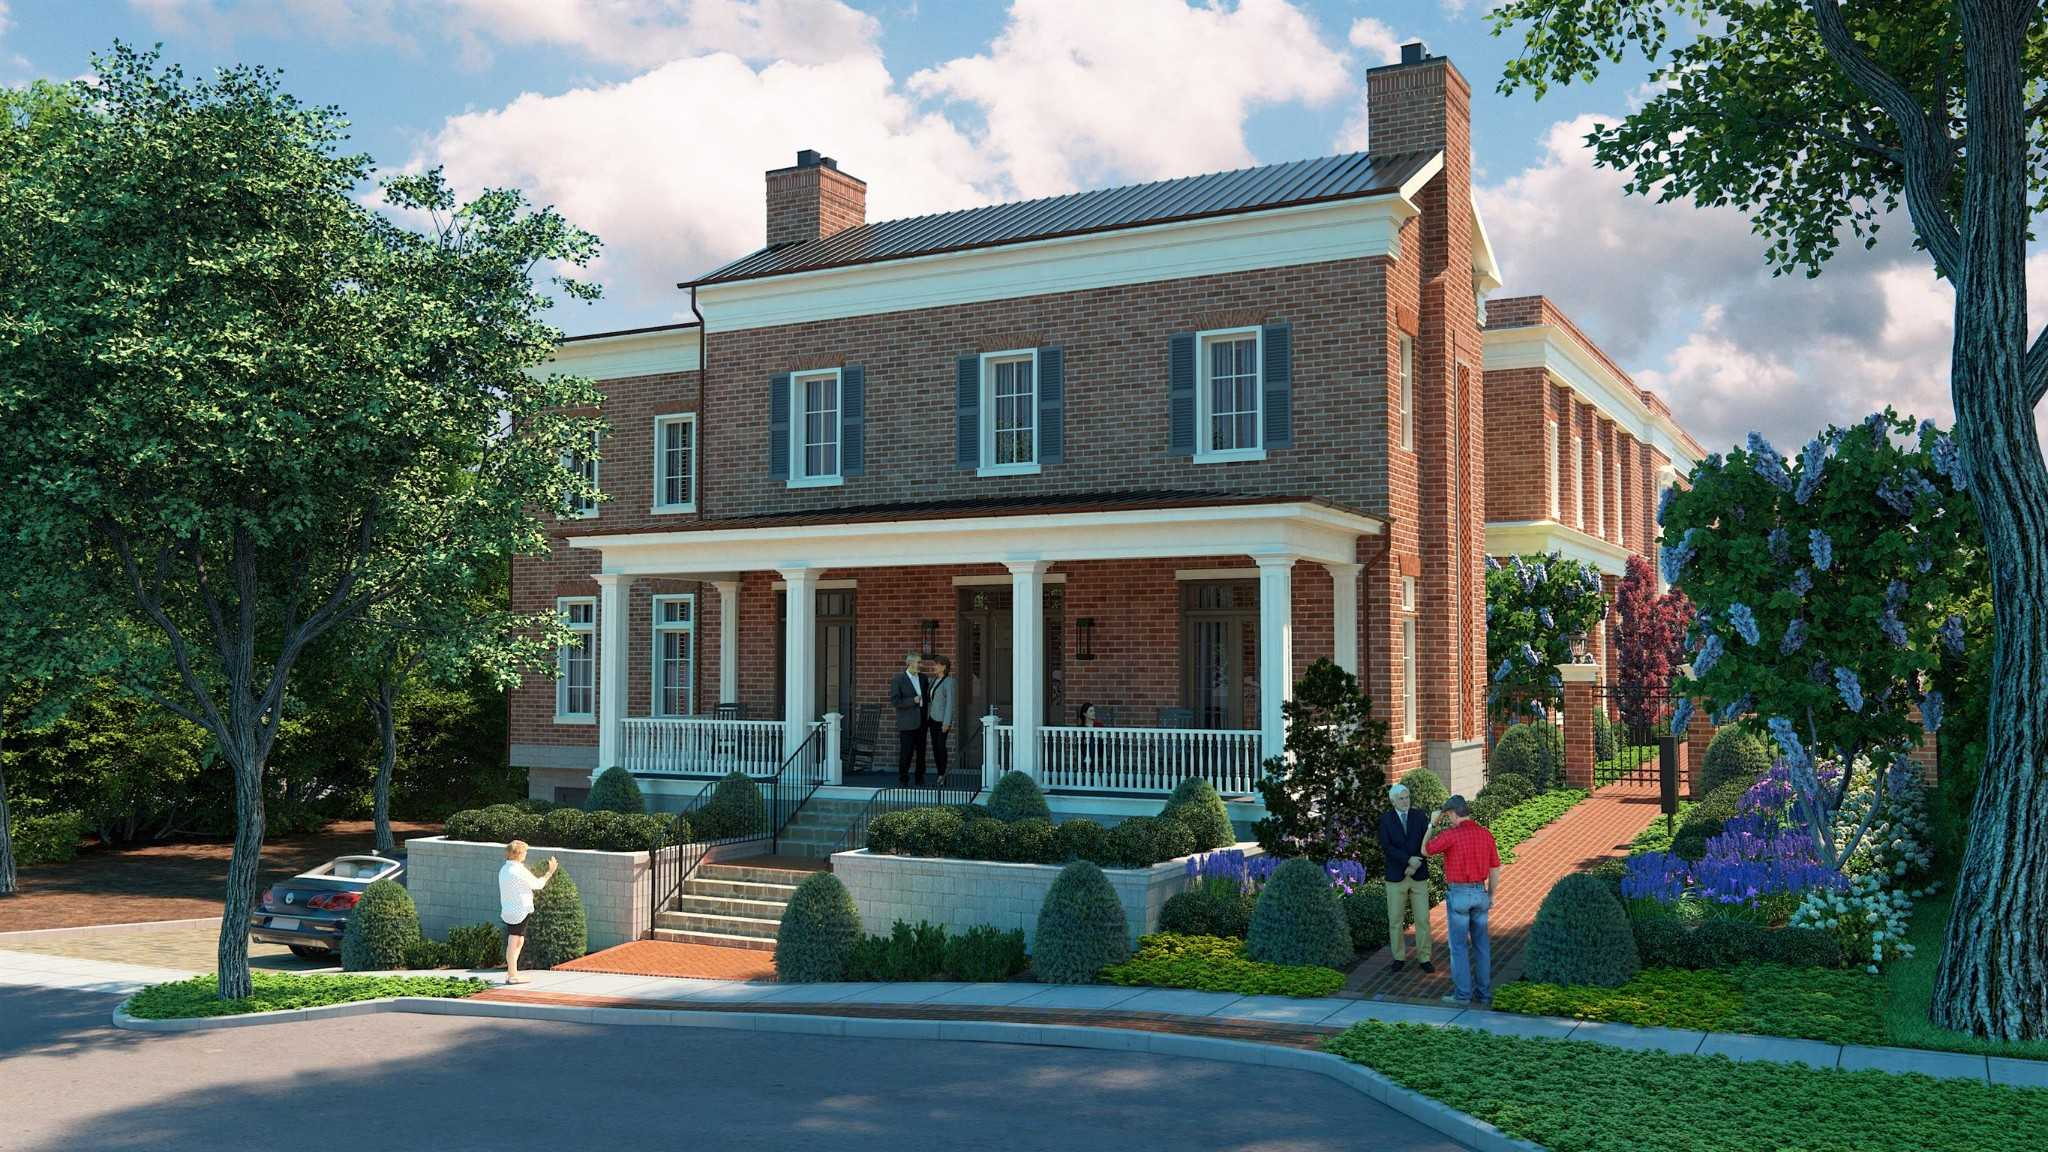 $2,794,000 - 3Br/4Ba -  for Sale in The Arlington At West Main, Franklin